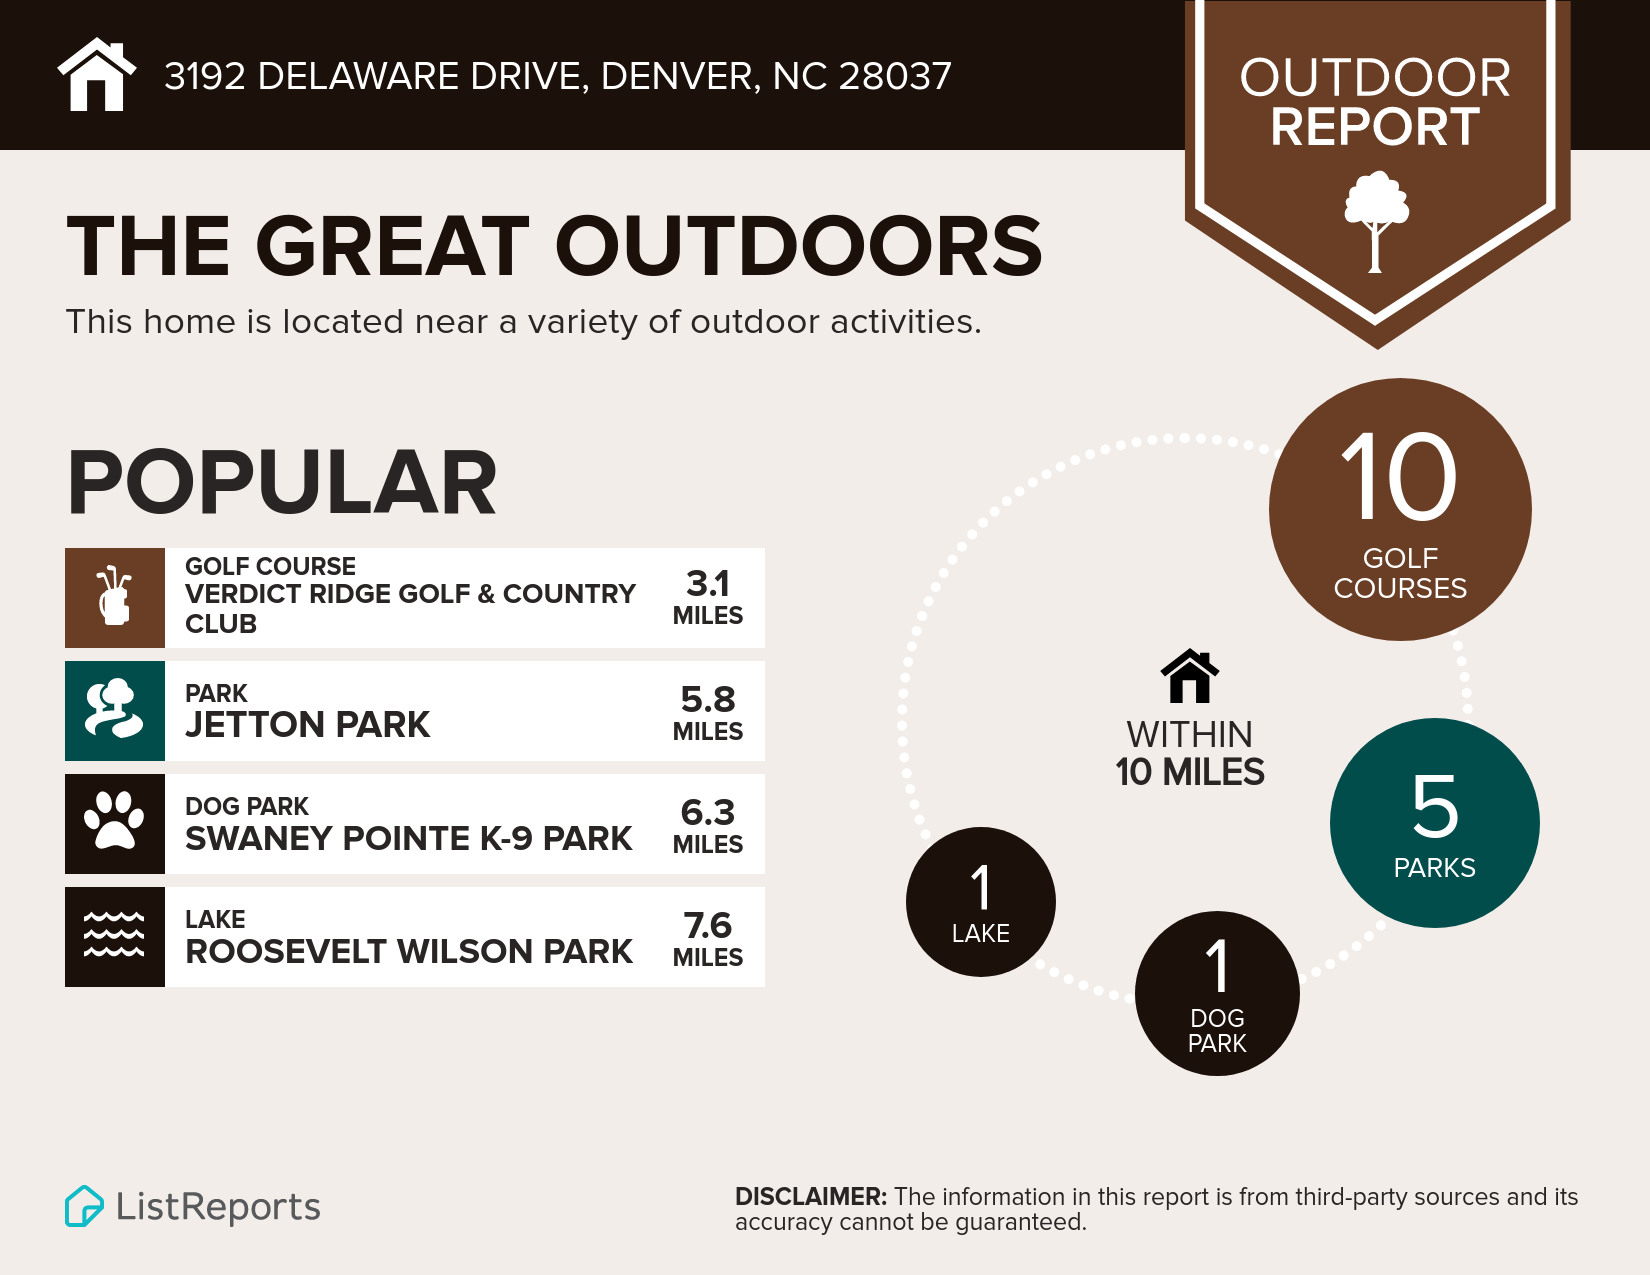 Denver NC provides lots of outdoor activities